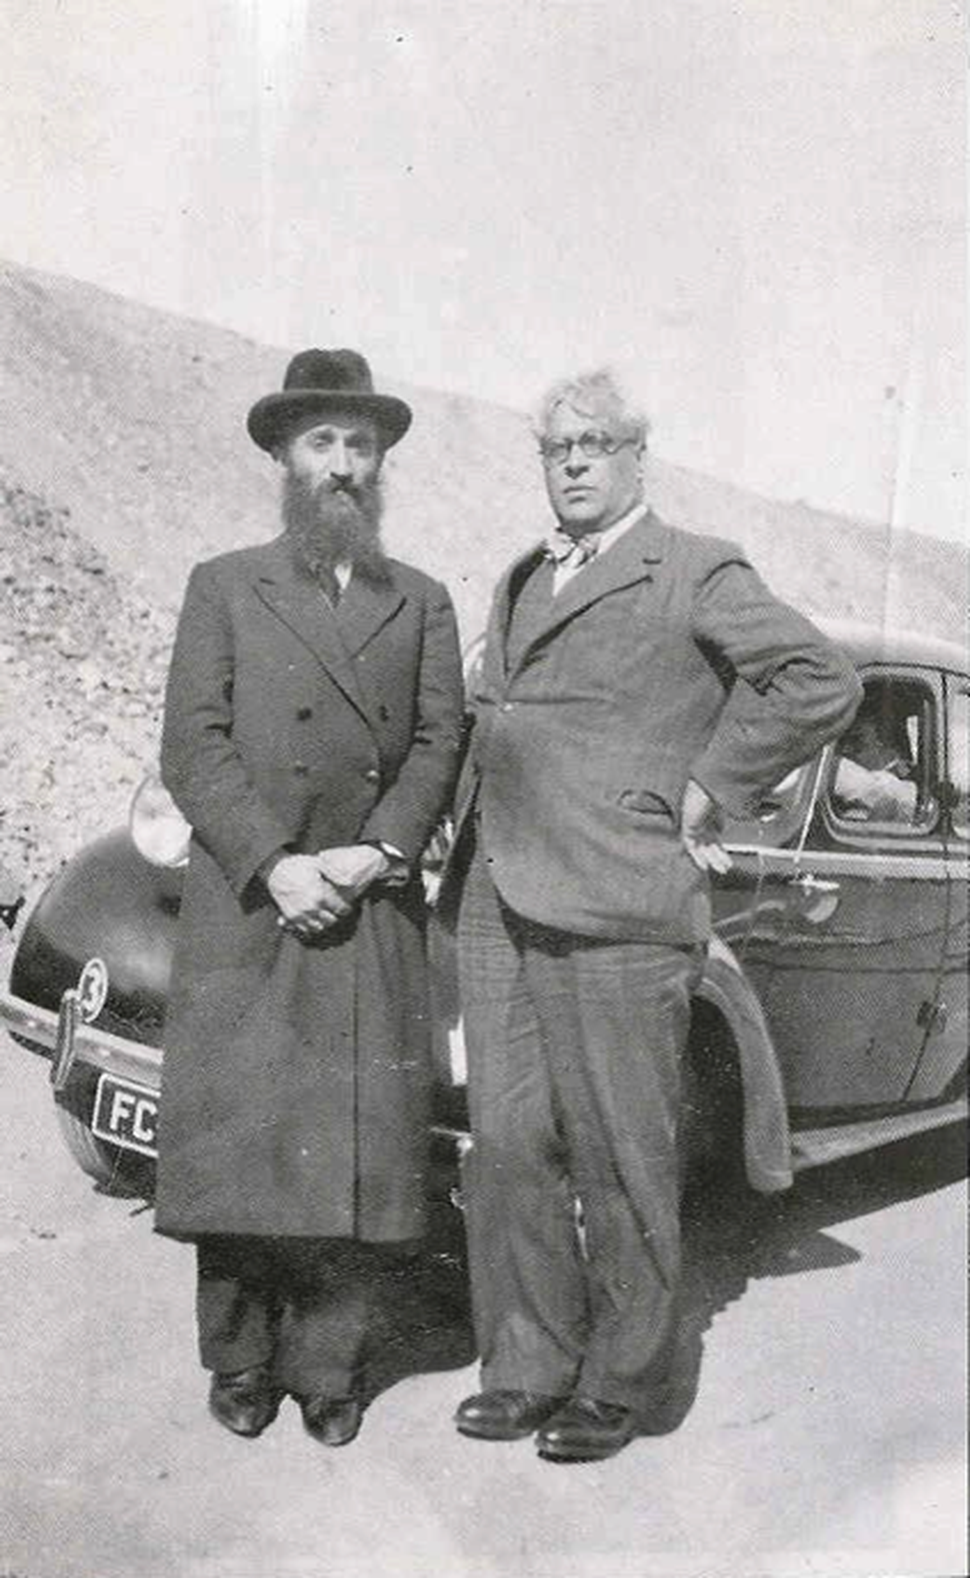 (Courtesy of the Sousa Mendes Foundation) Refugee advocate Rabbi Chaim Kruger, left, with Consul General Aristides de Sousa Mendes of Portugal in 1940.